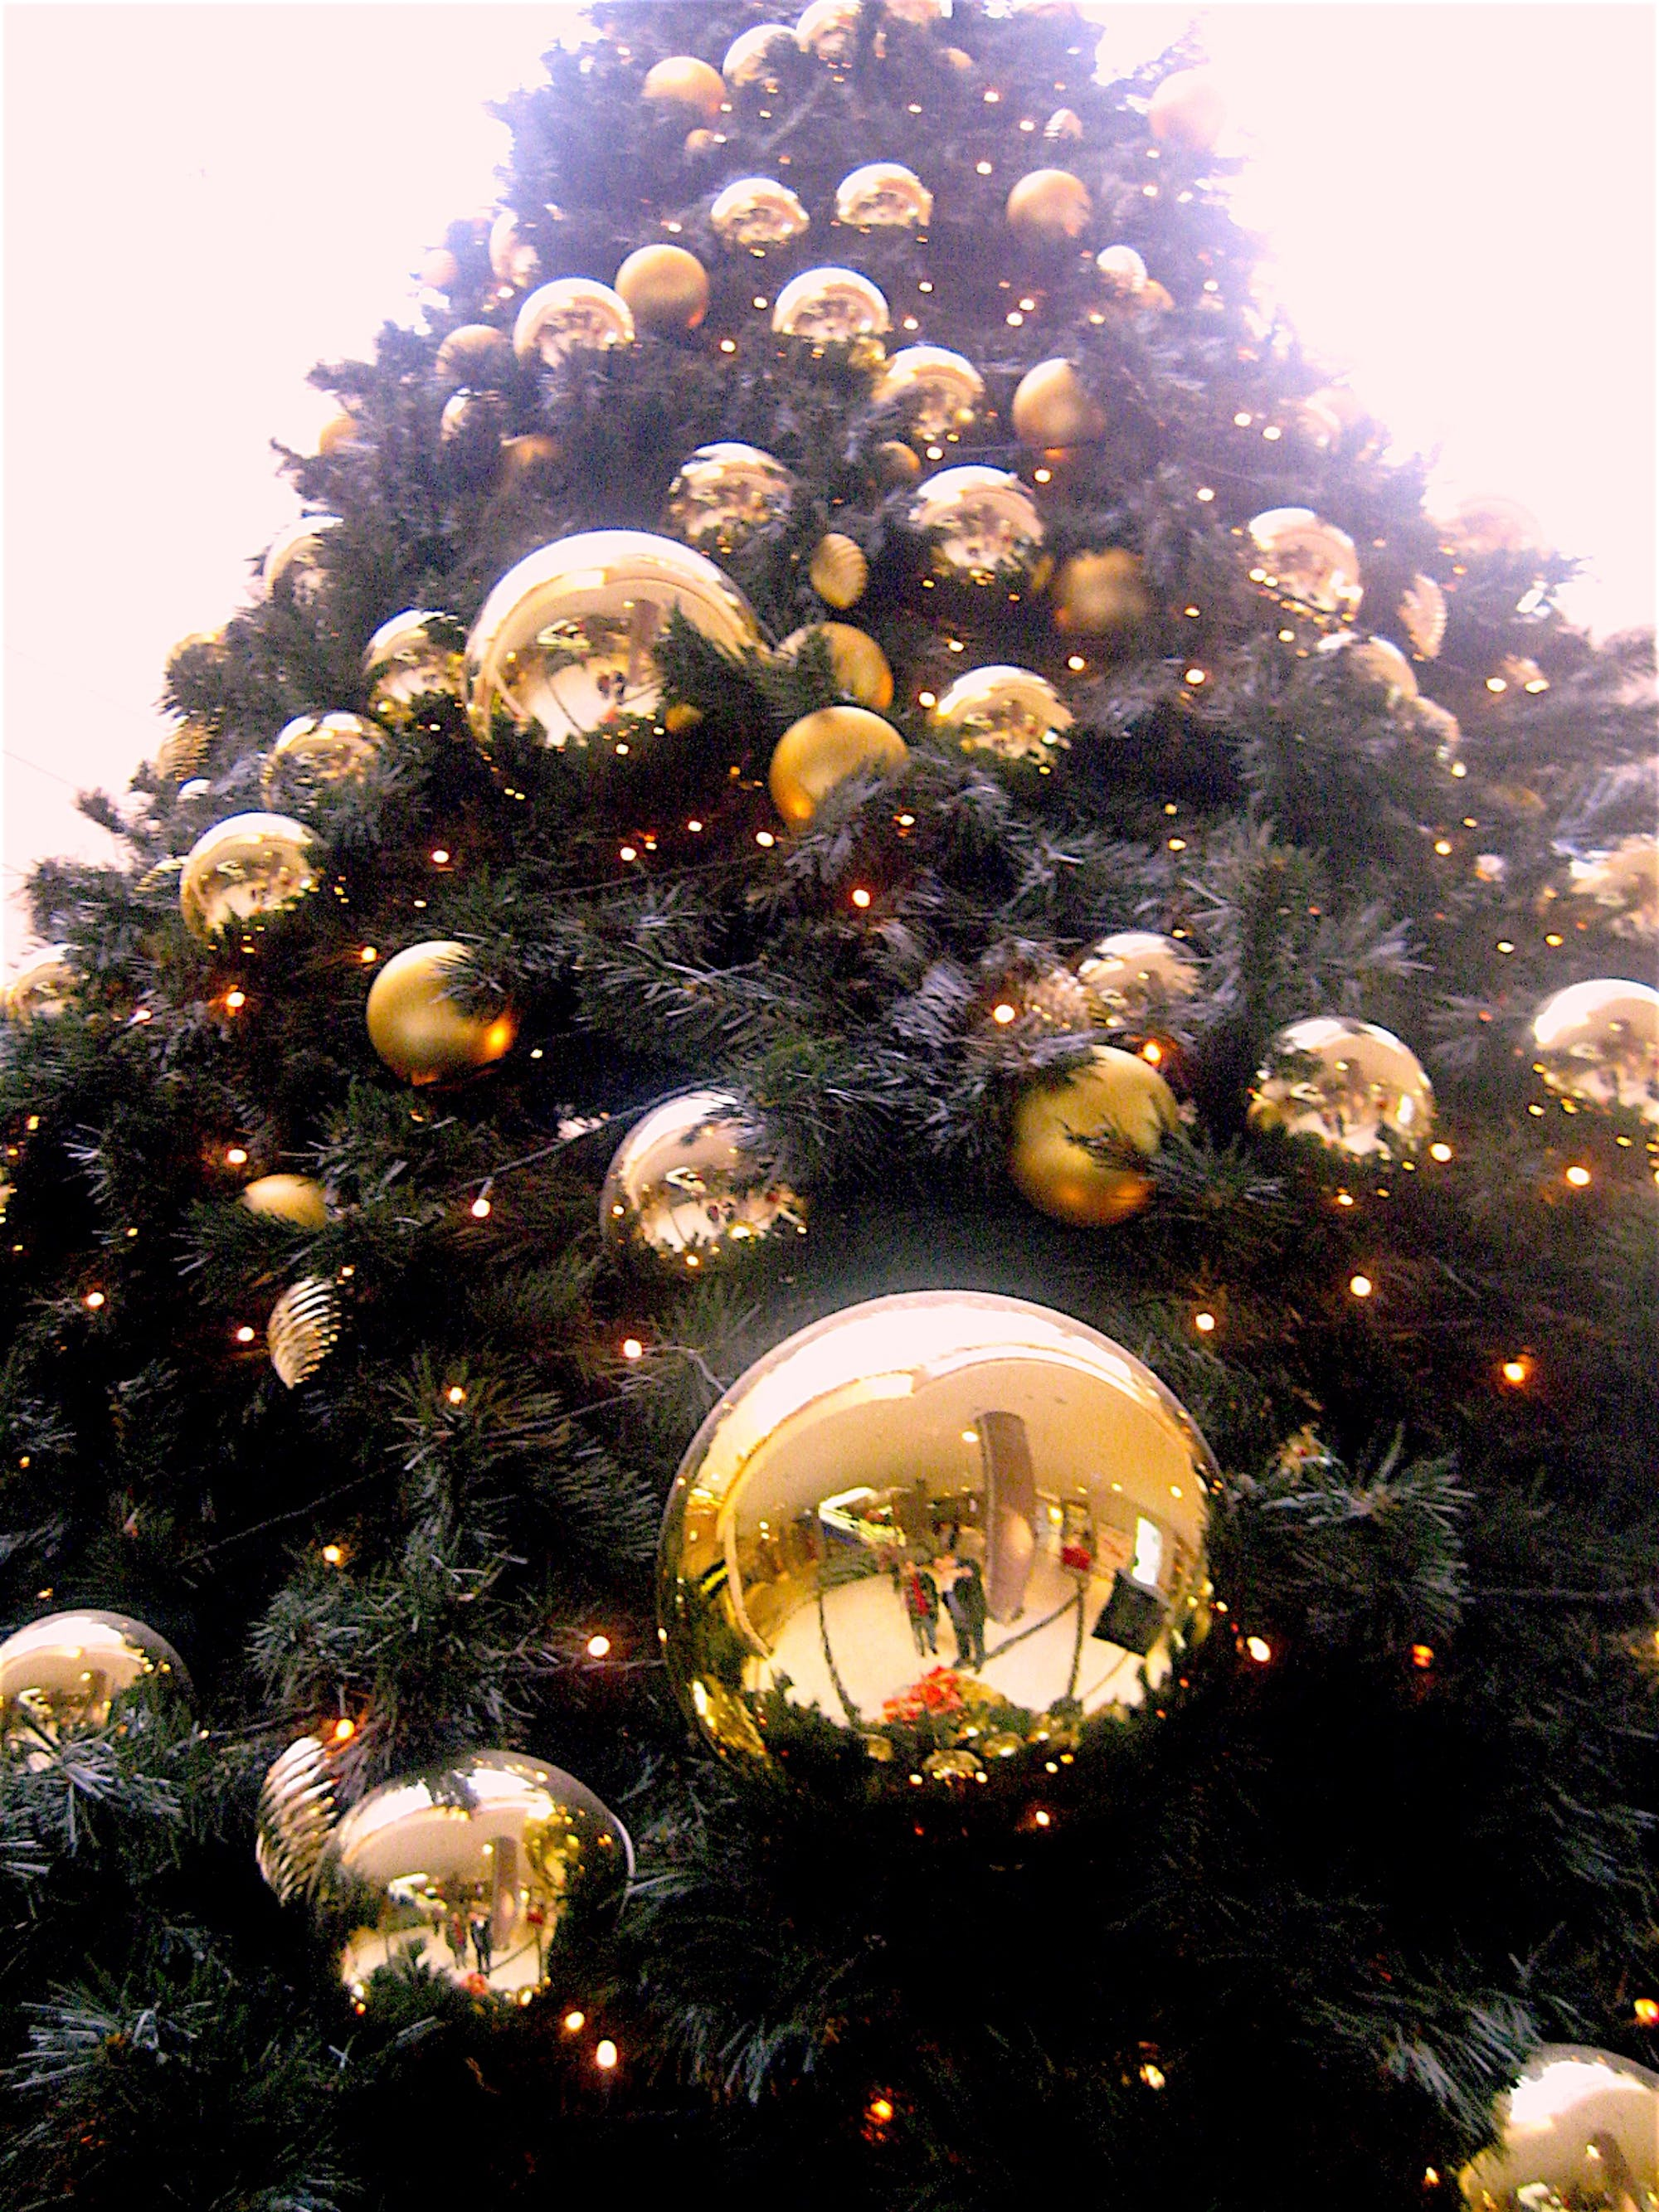 Low Angle Shot of Christmas Tree With Gold-colored Bauble